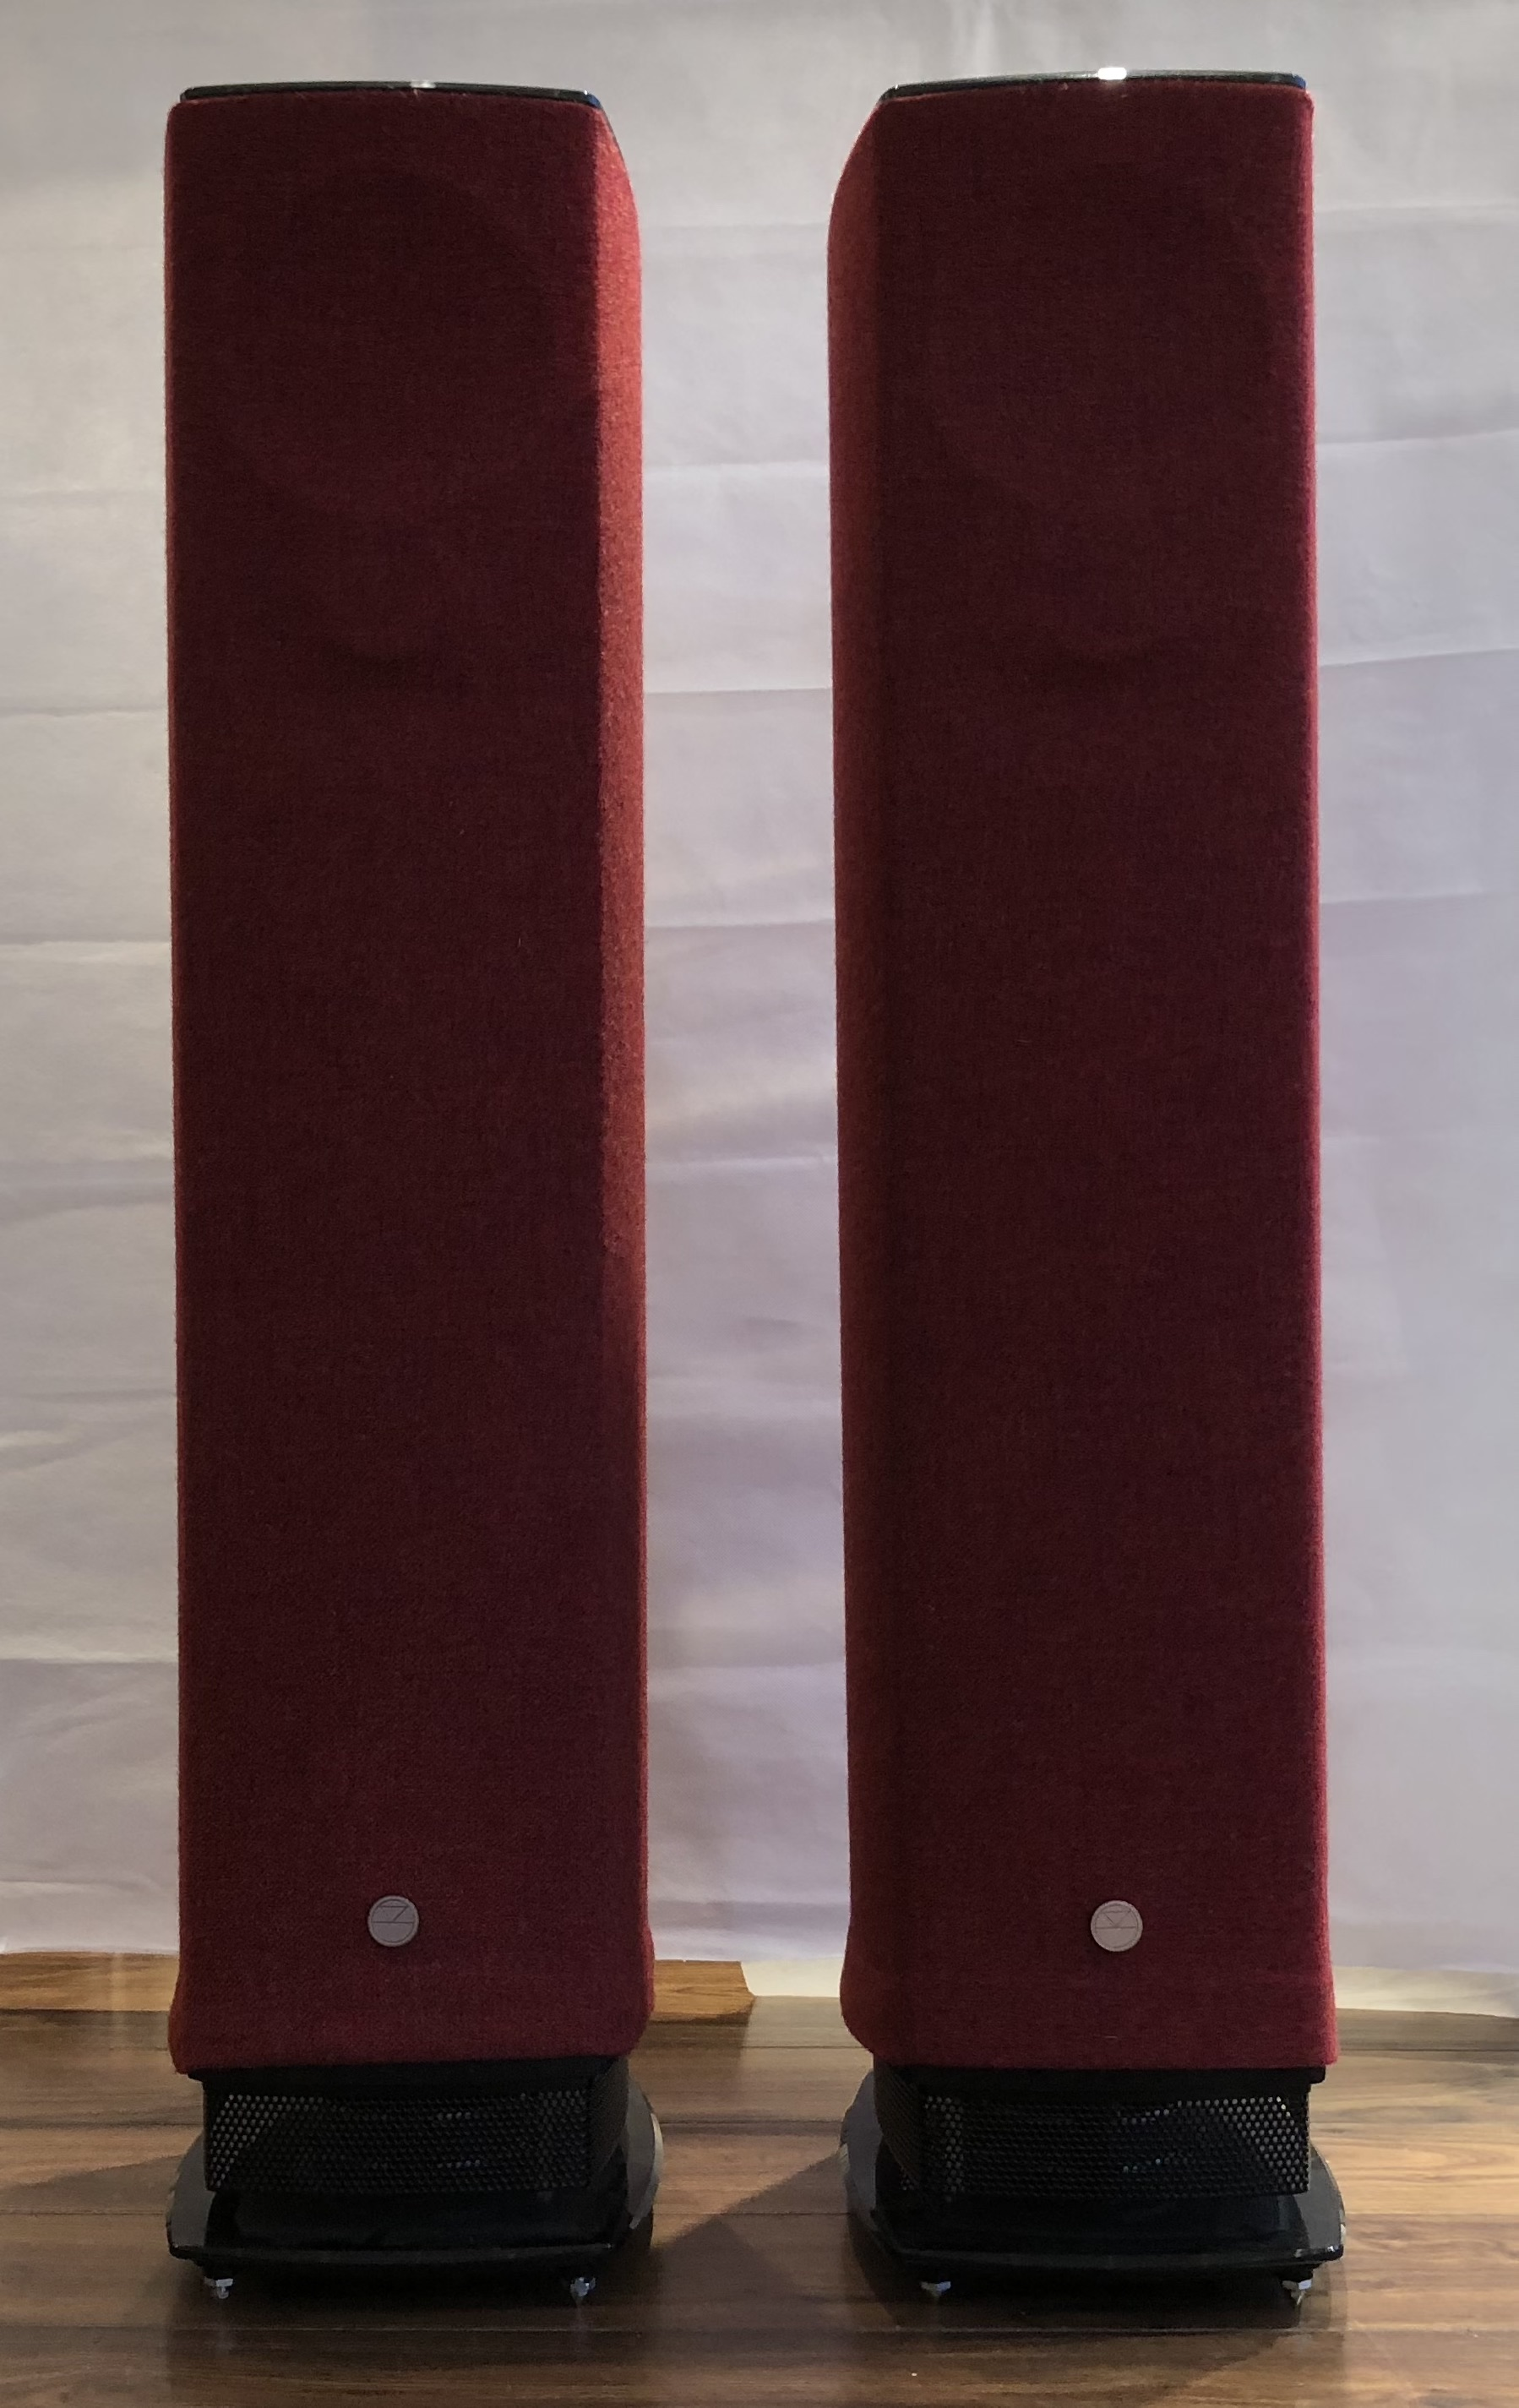 Picture of Linn Linn Series 5 Exakt & Isobarik 530 Speakers. Ex-Demo